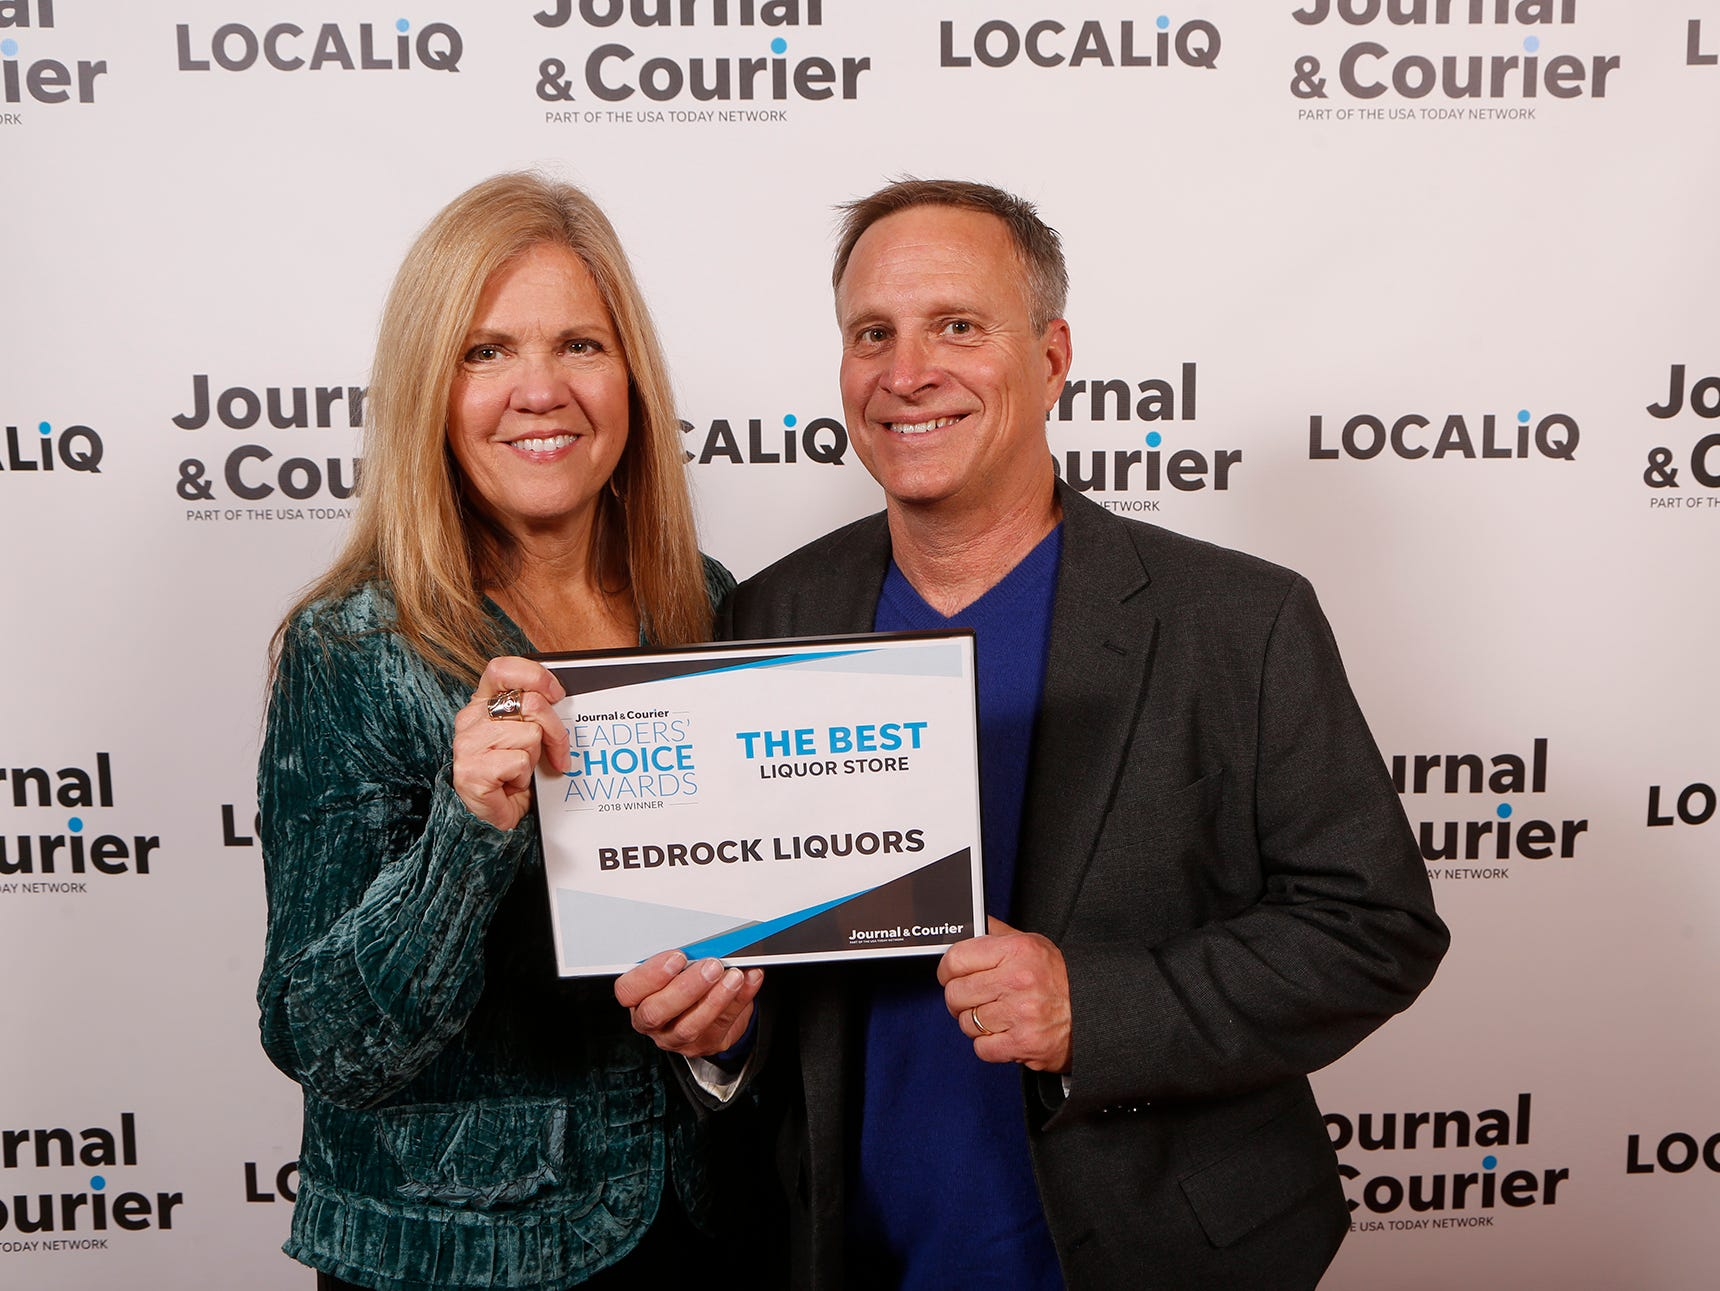 Bedrock Liquors, Journal & Courier Readers' Choice Awards winner for the best liquor store.